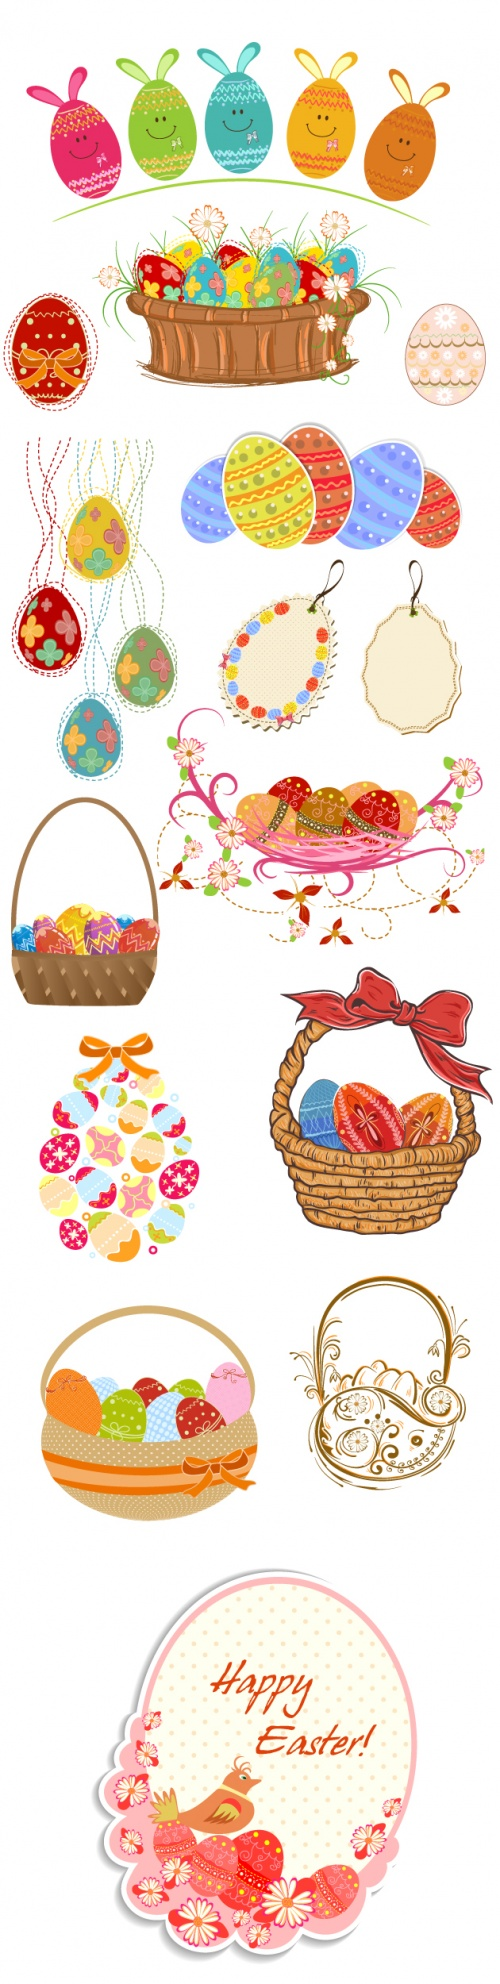 Designtnt - Vector Easter Elements Set 4